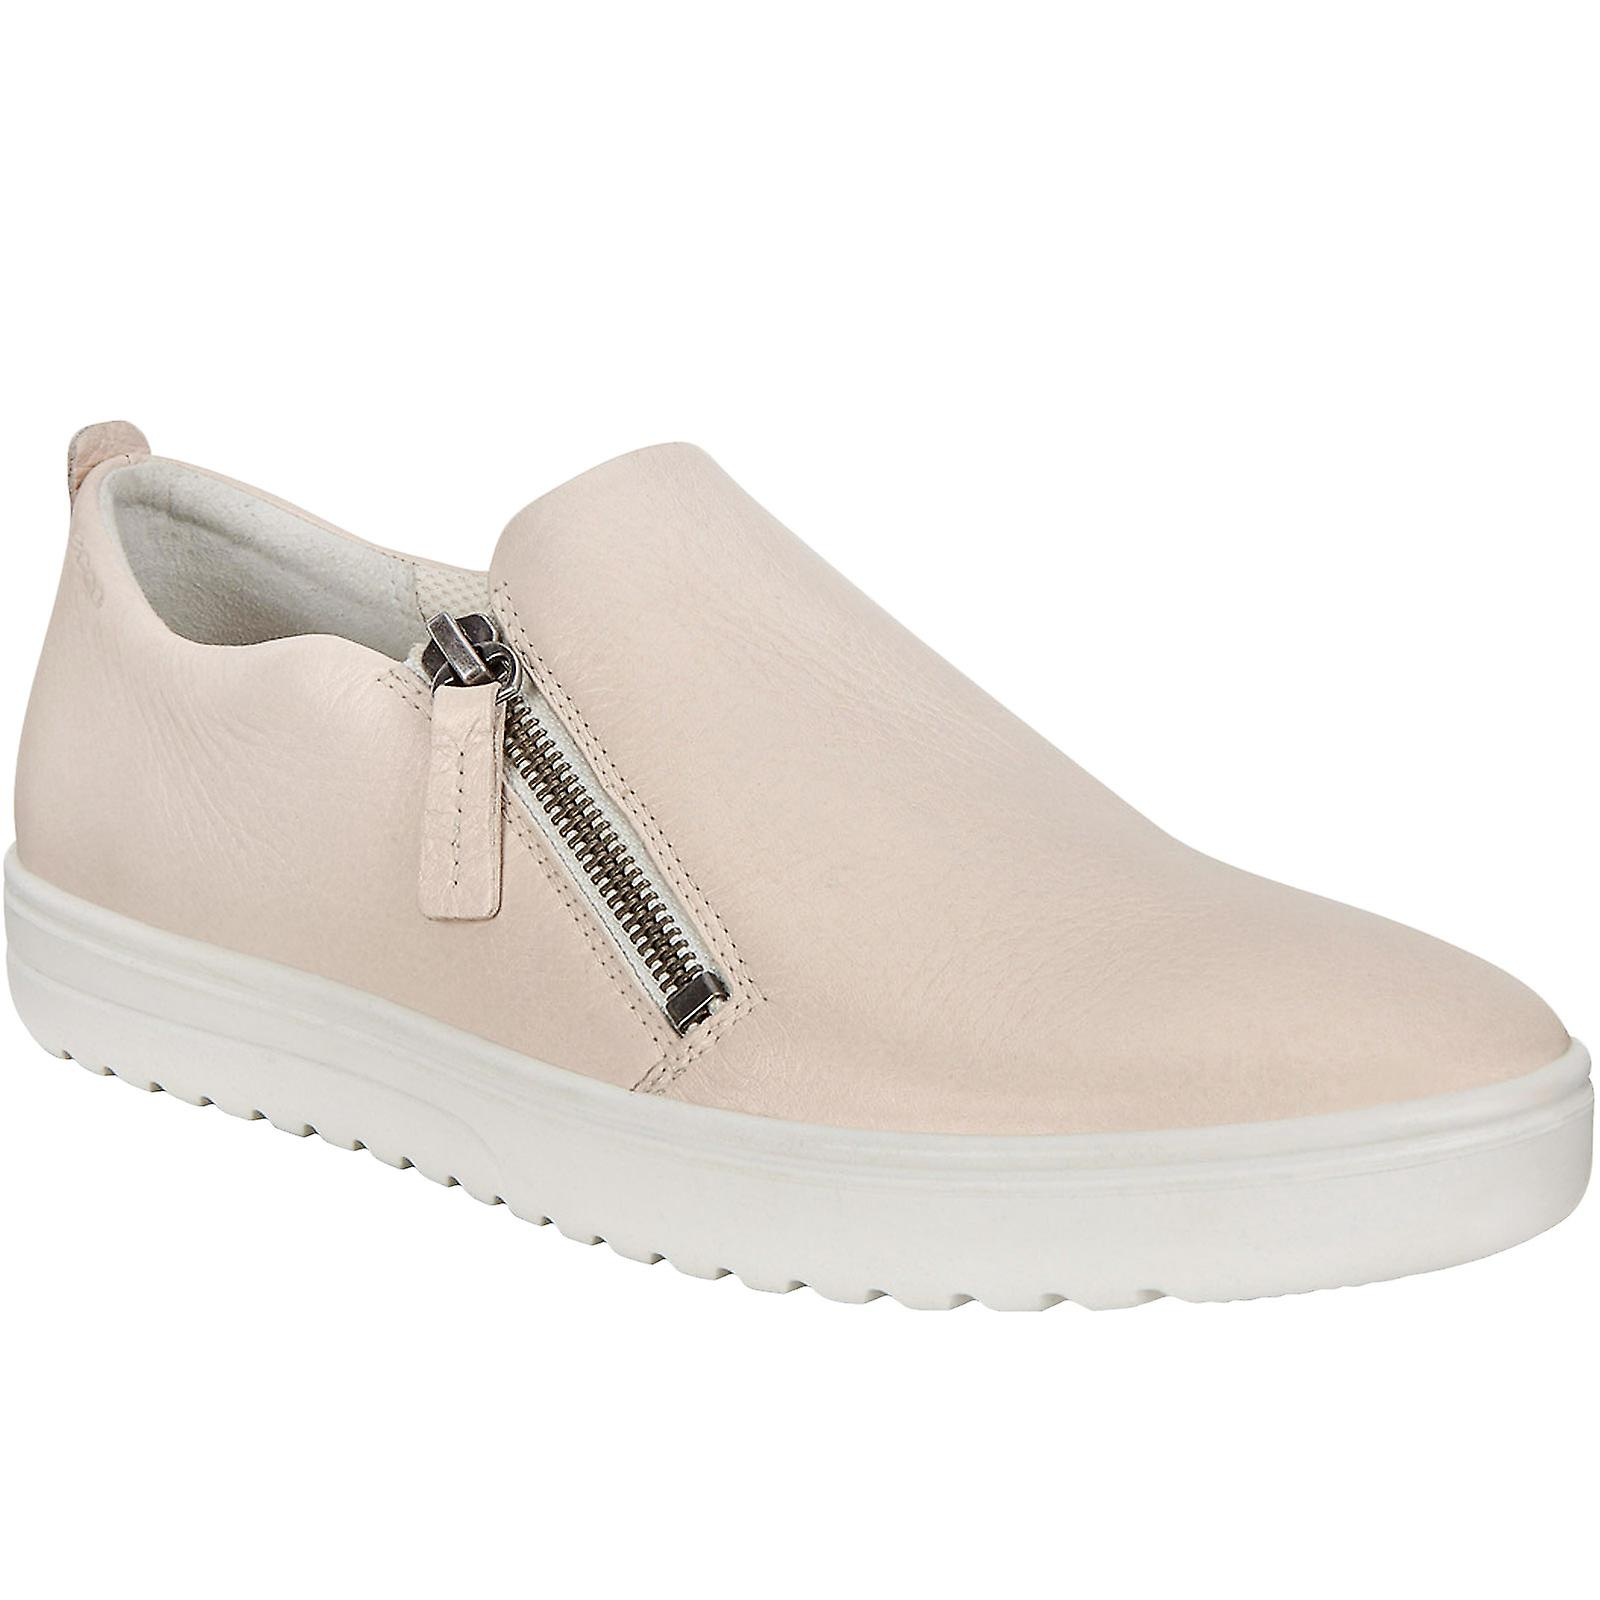 Ecco Womens Fara Leather Casual Fashion Slip On Zip Up Trainers Pumps Shoes